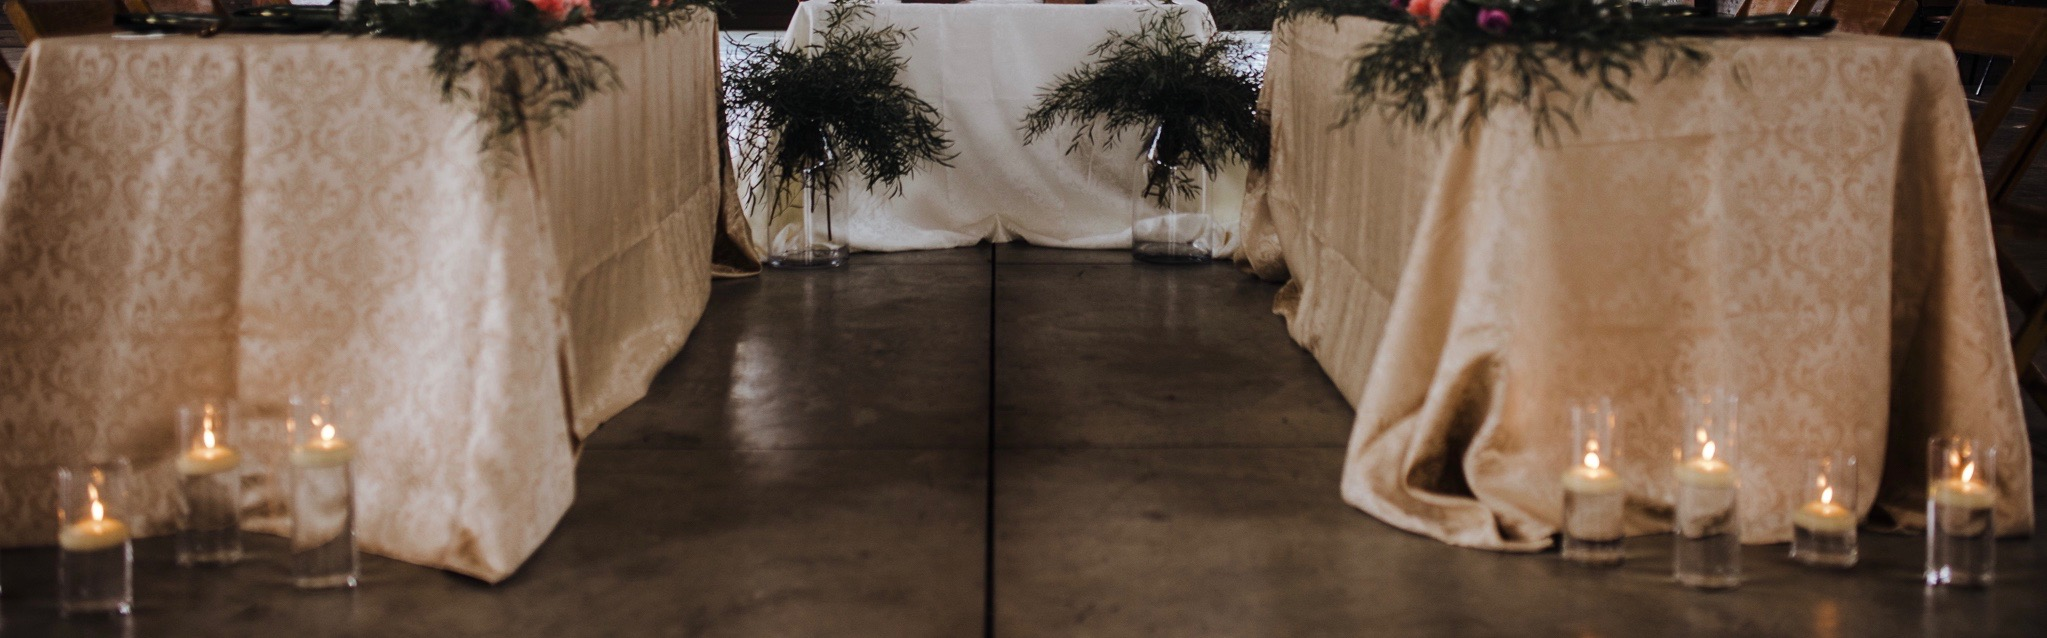 Damask Tablecloth